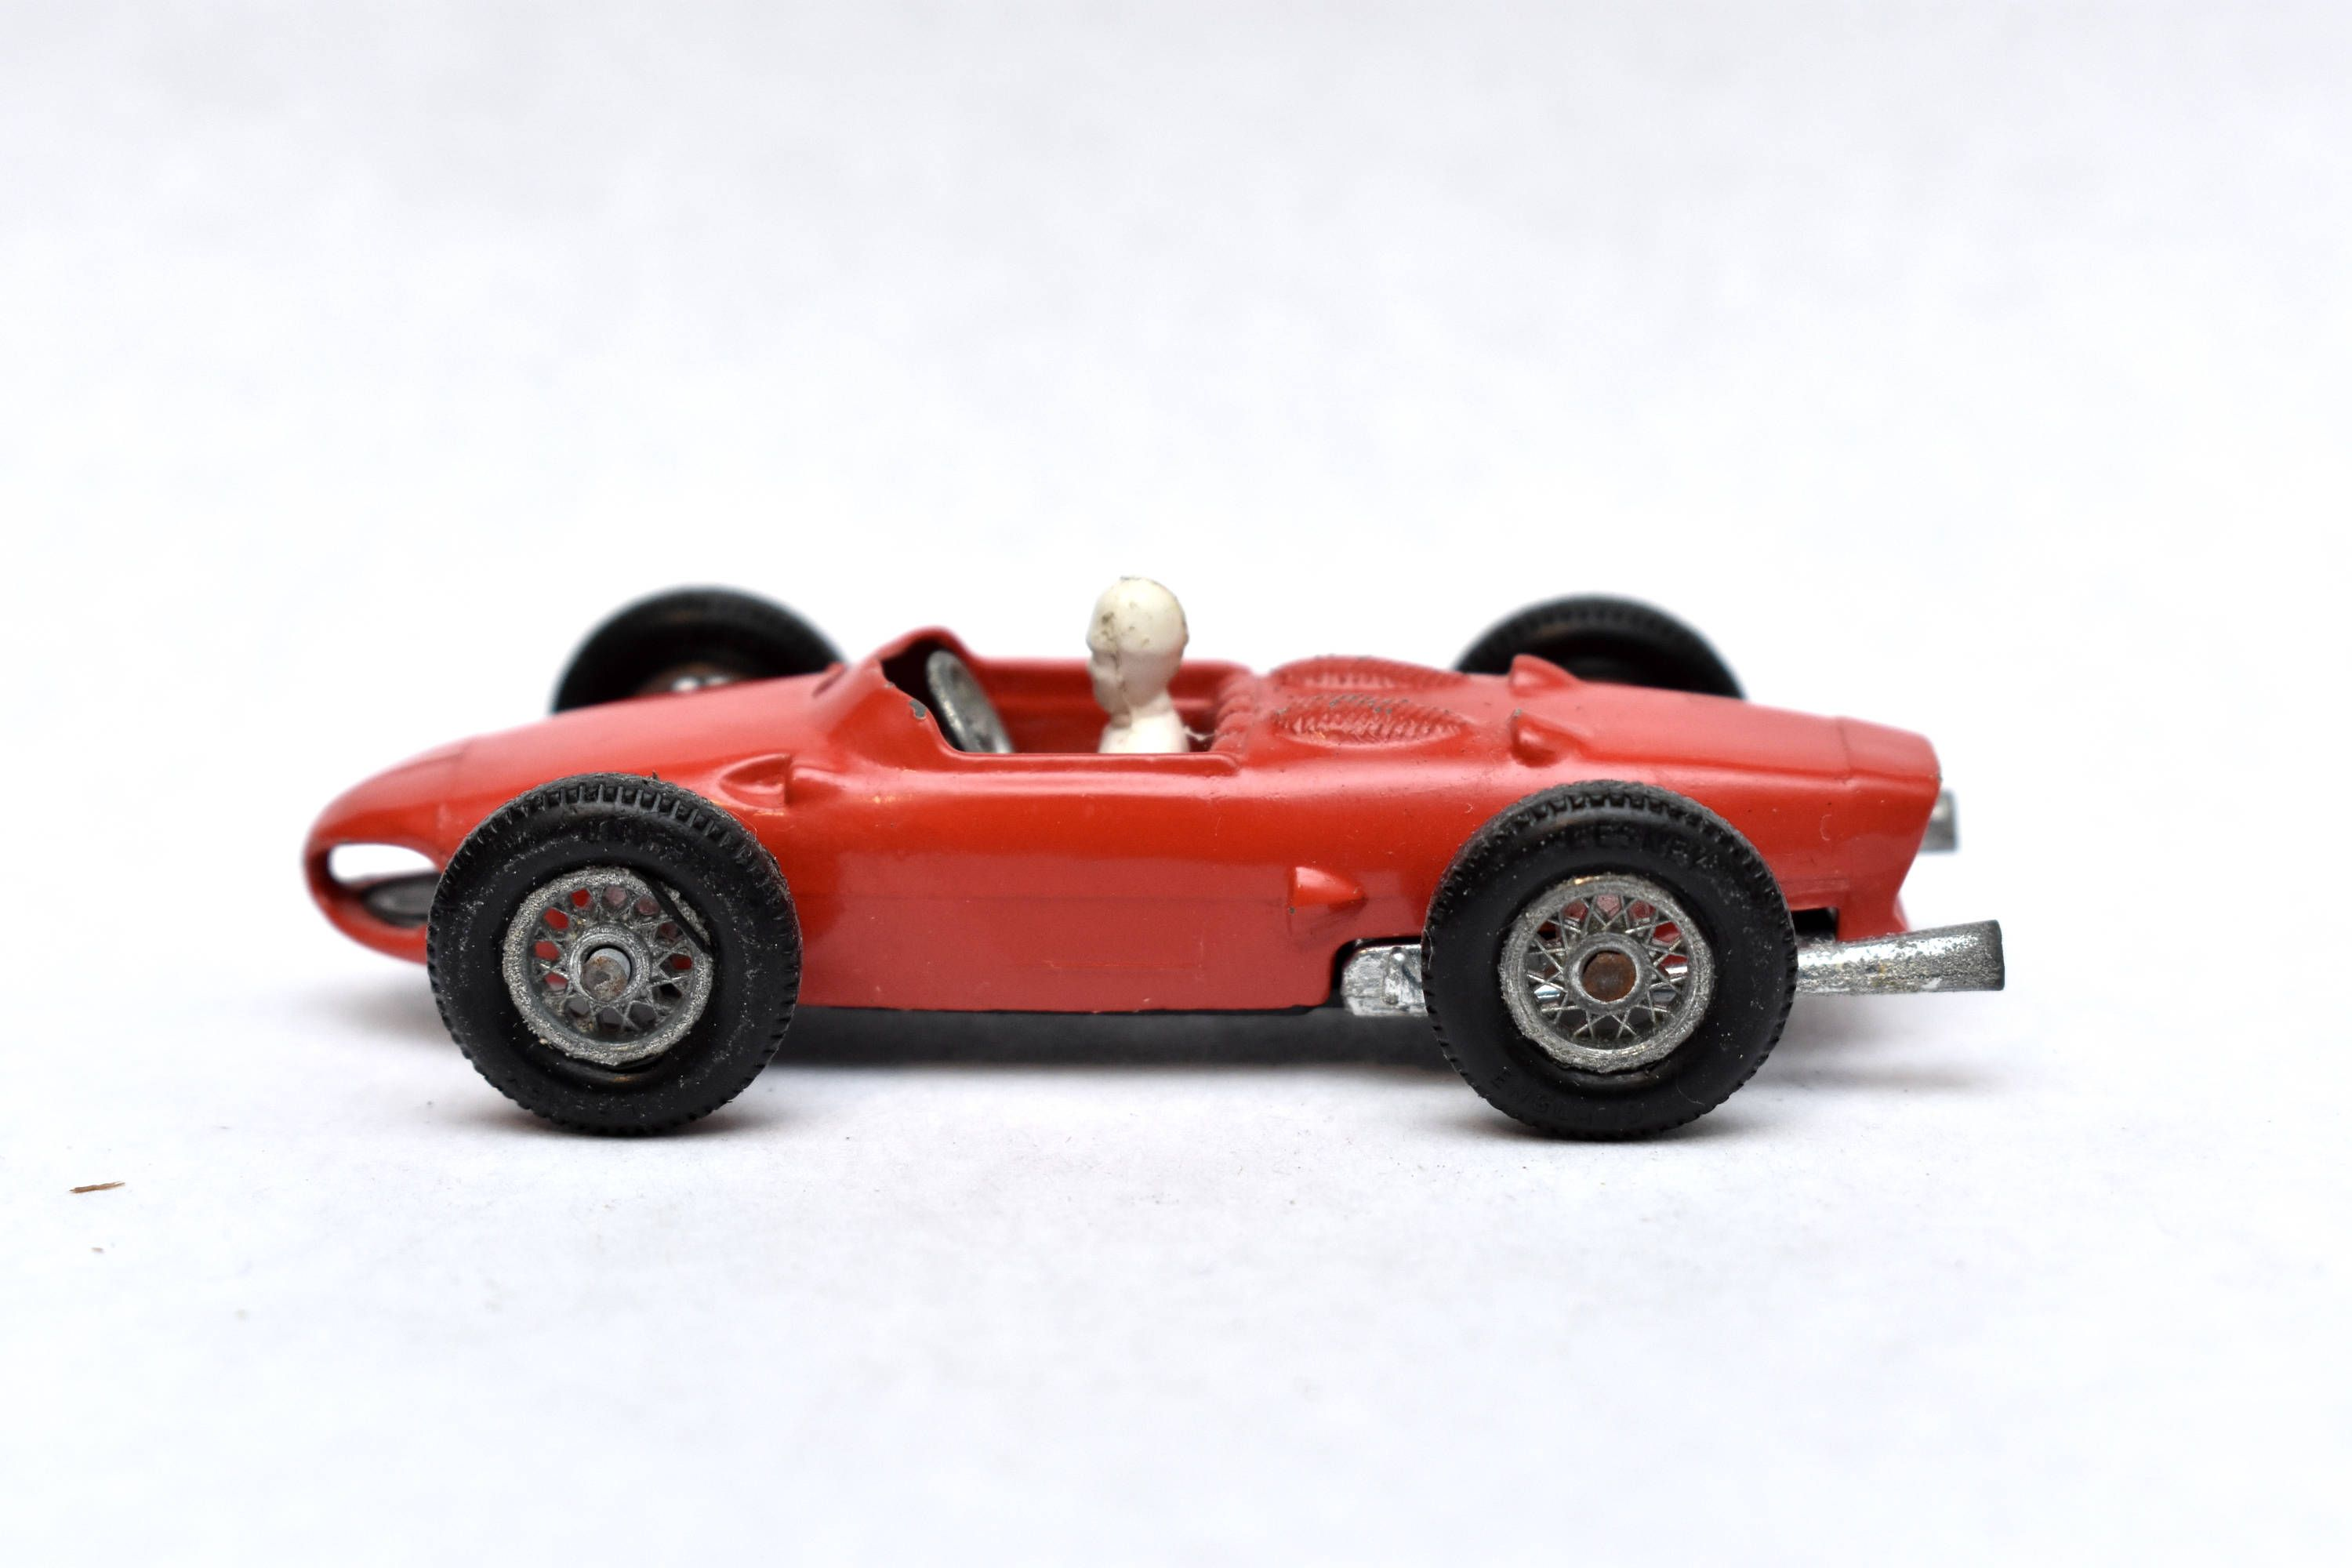 Matchbox Lesney No 73 Ferrari F1 Racing Car 1960 S Made In England Original Vintage Die Cast Toy Car Collection By Rememberwhe Matchbox Cars Matchbox Toy Car